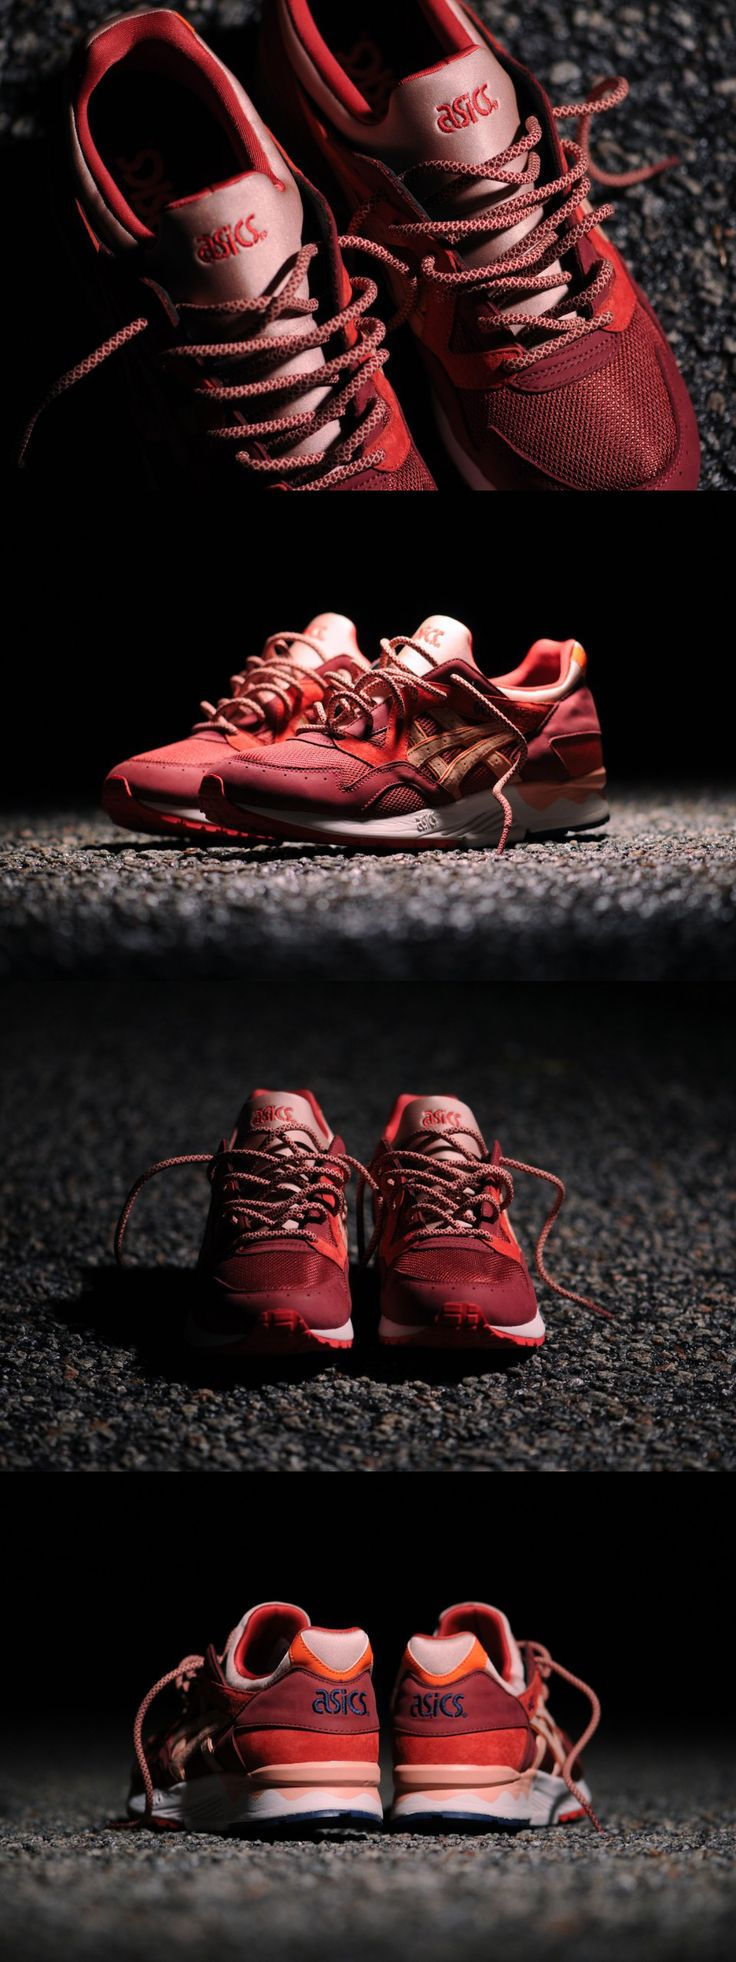 asics aaron marron photography